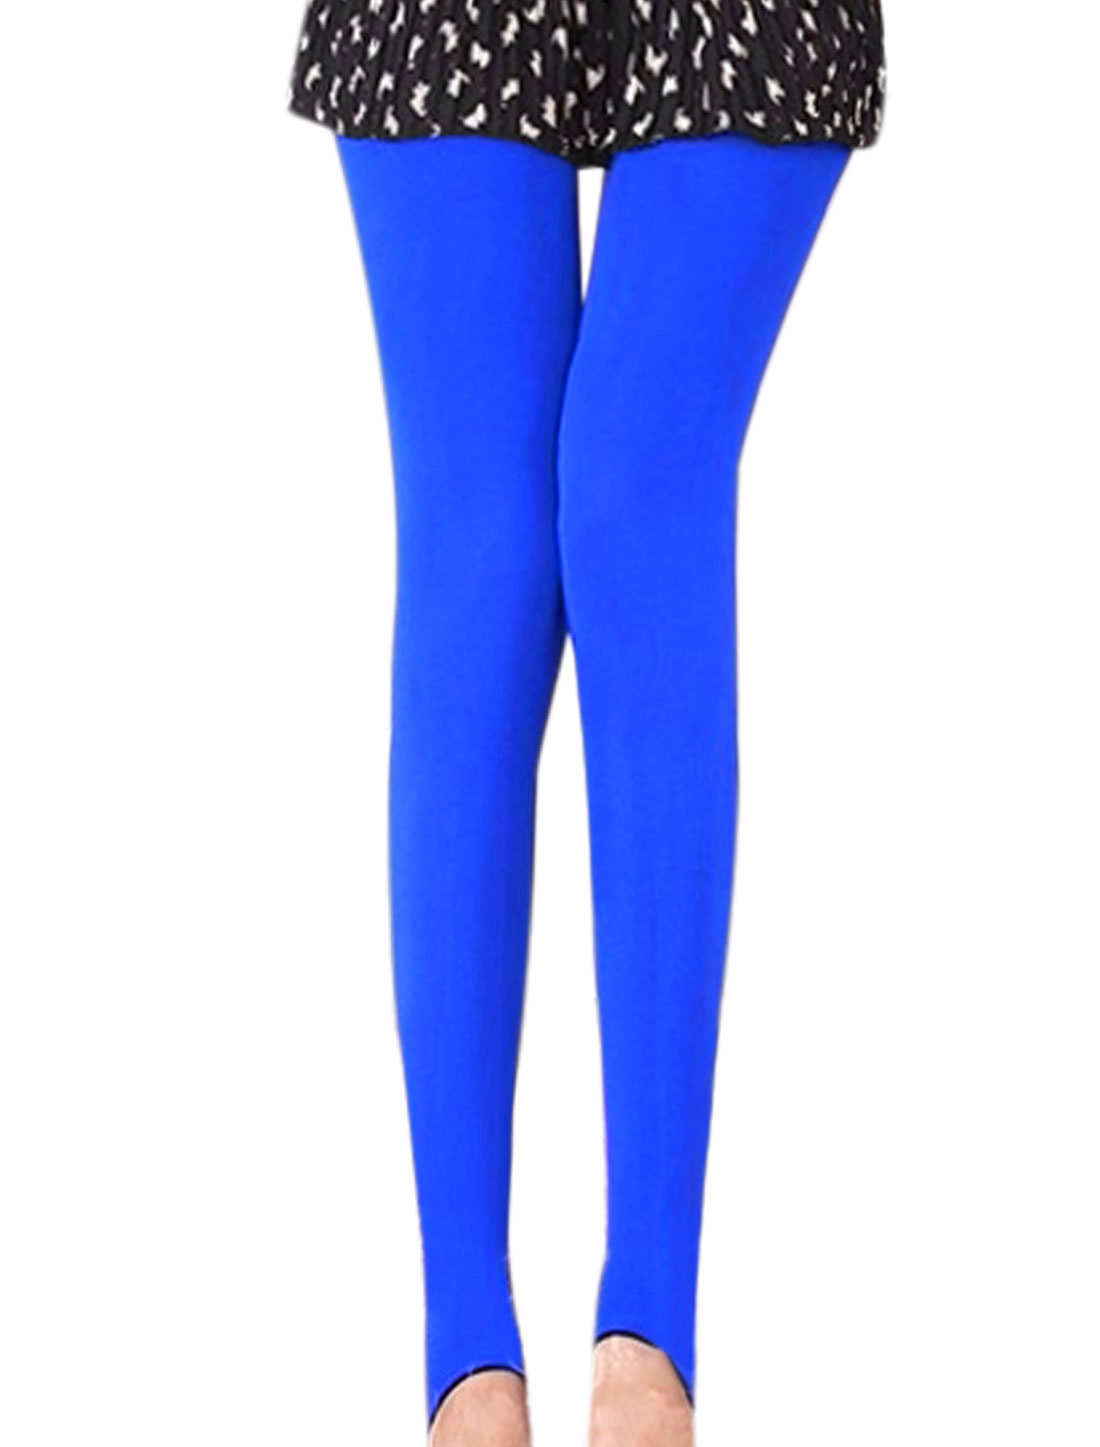 Lady Stirrup Stretchy Stylish Royal Blue Reversible Pantyhose XS